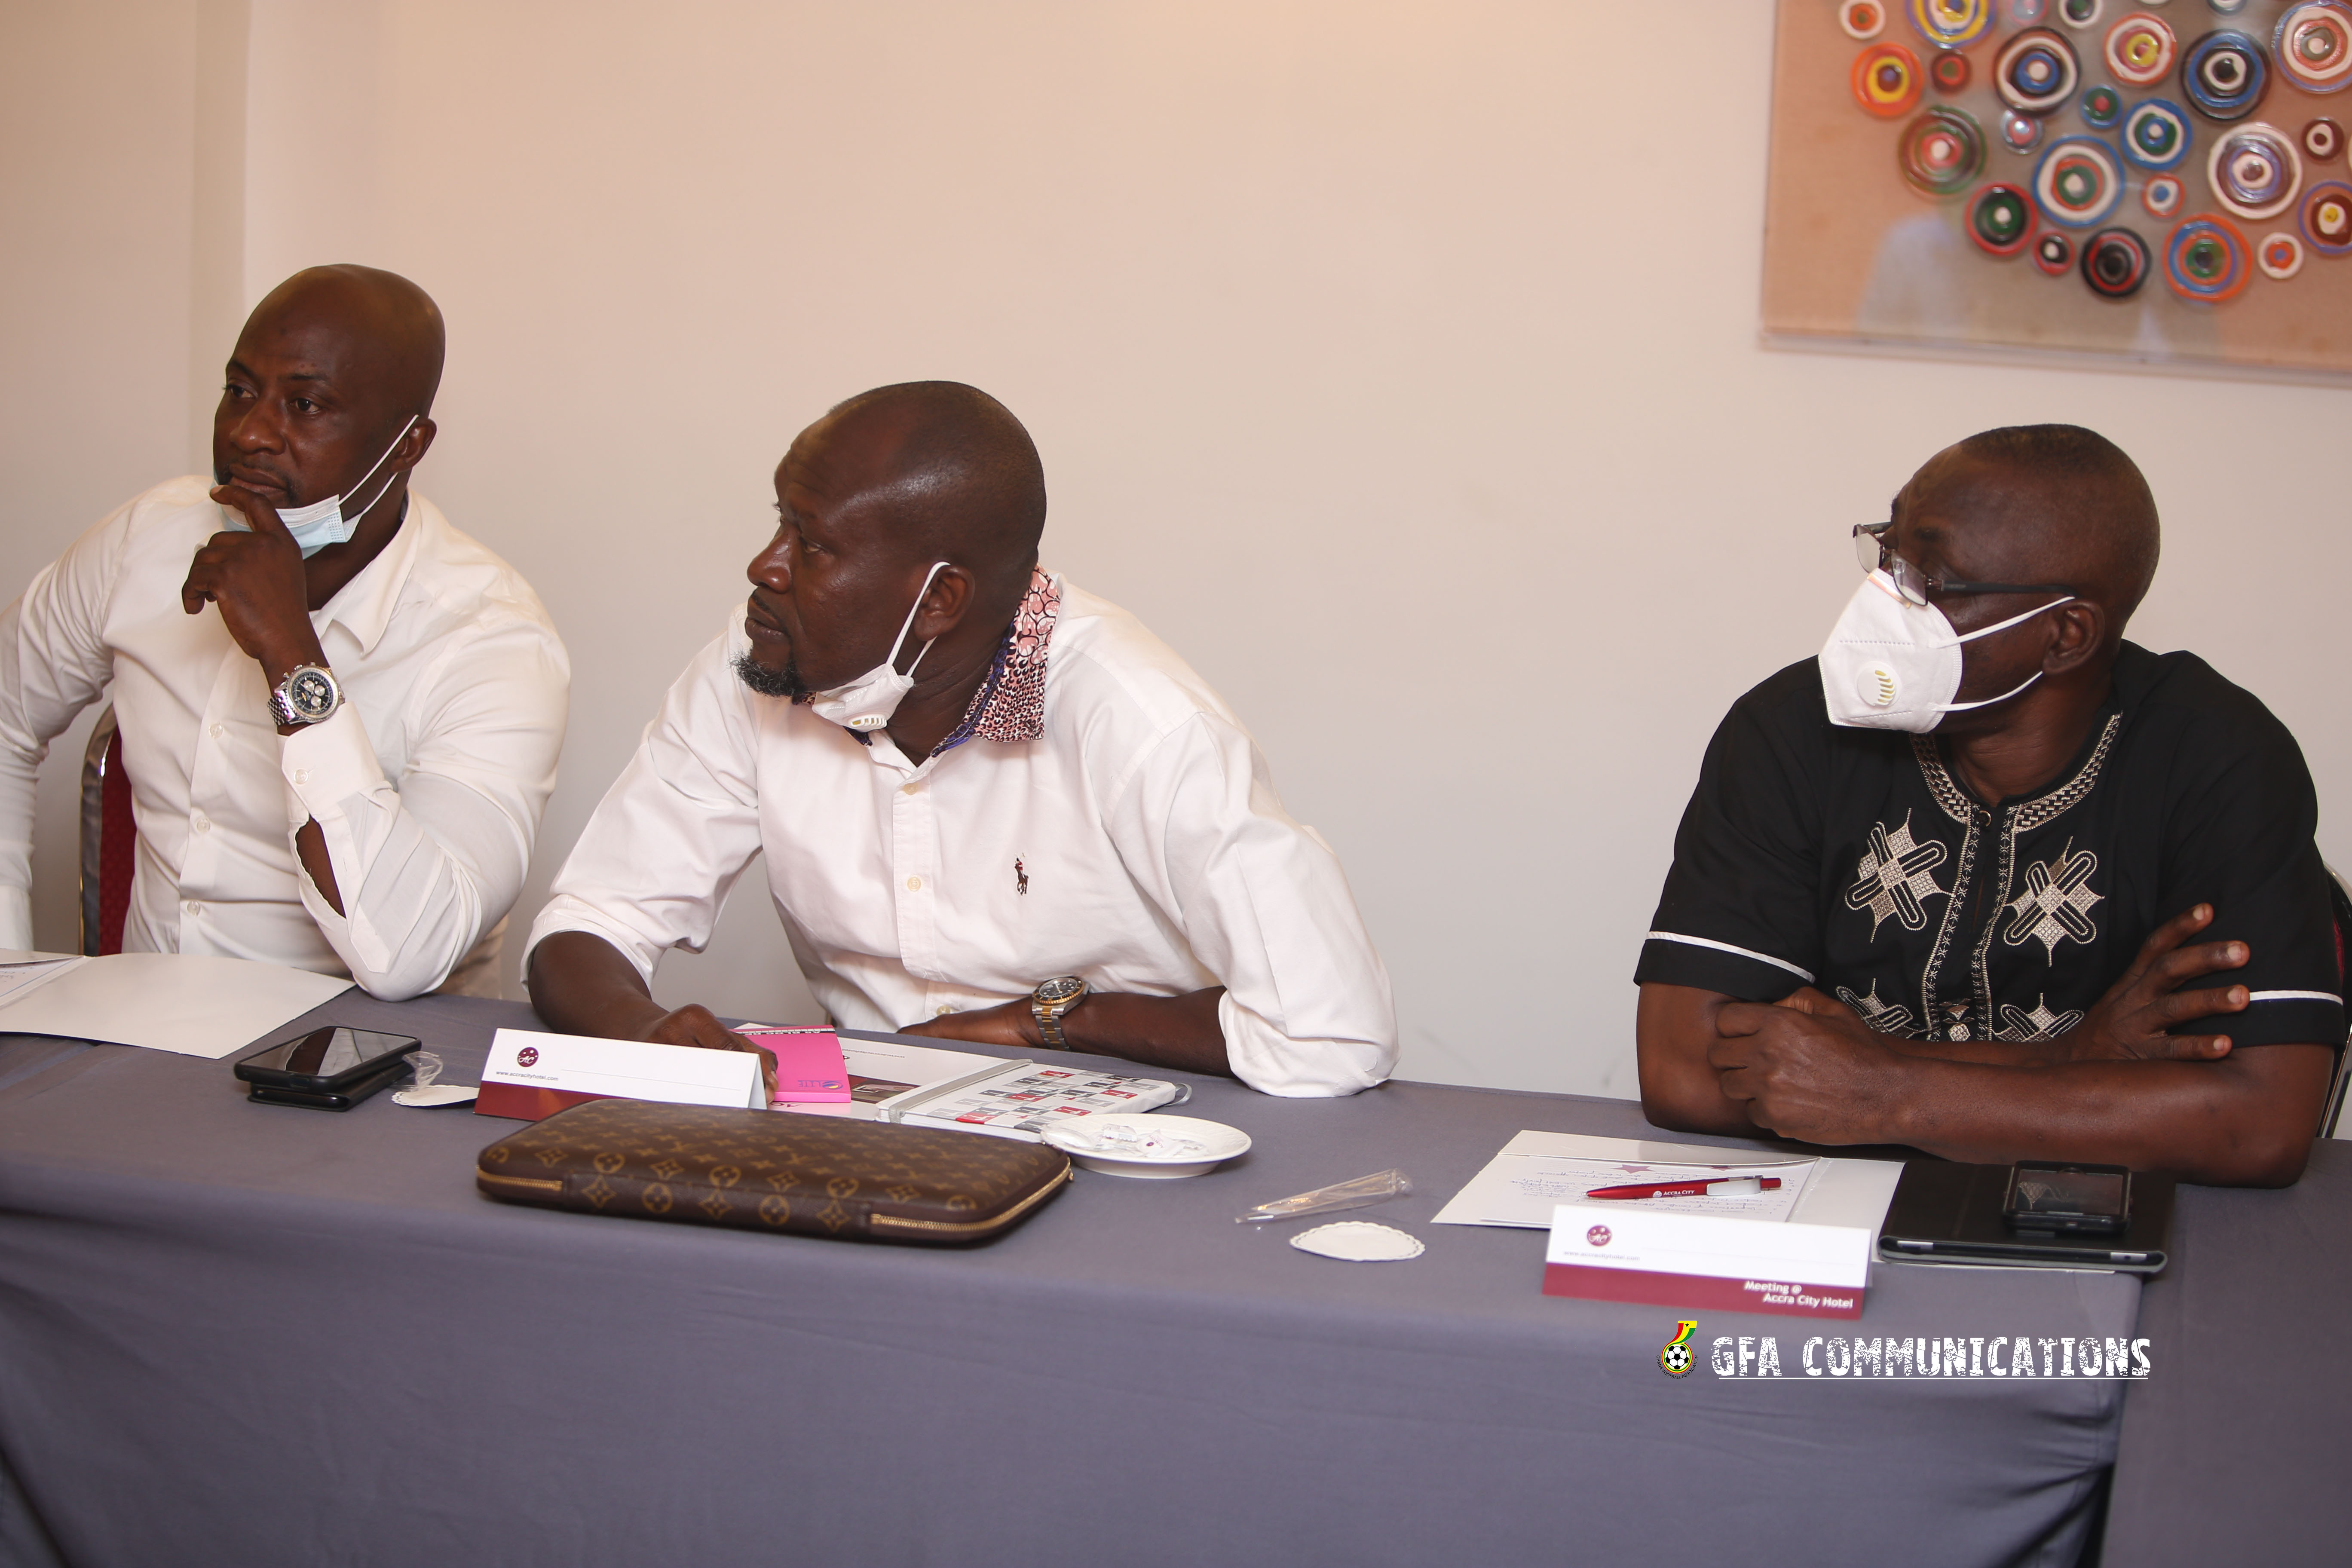 IMG 7197 - Ghana FA Opens One Week Refresher Course For Male National Team Coaches